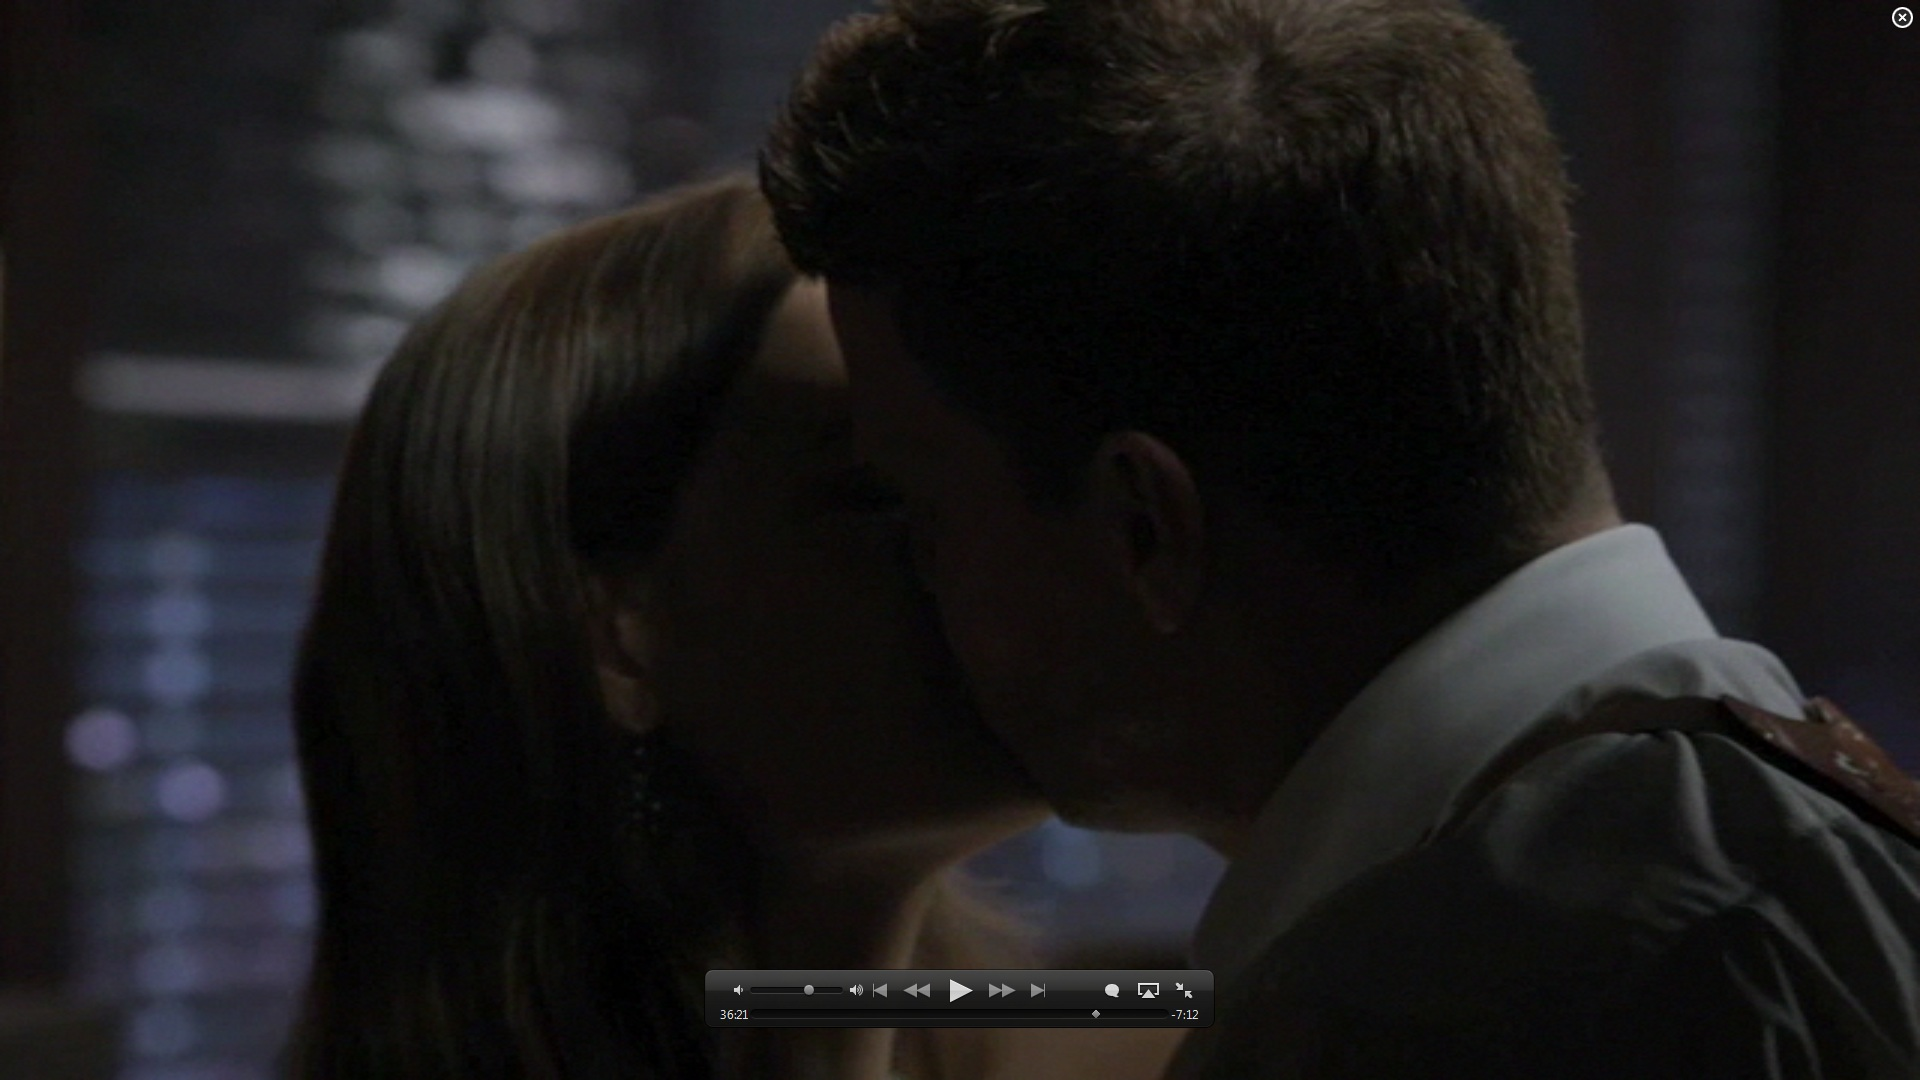 7x01 kiss booth and bones image 26582077 fanpop